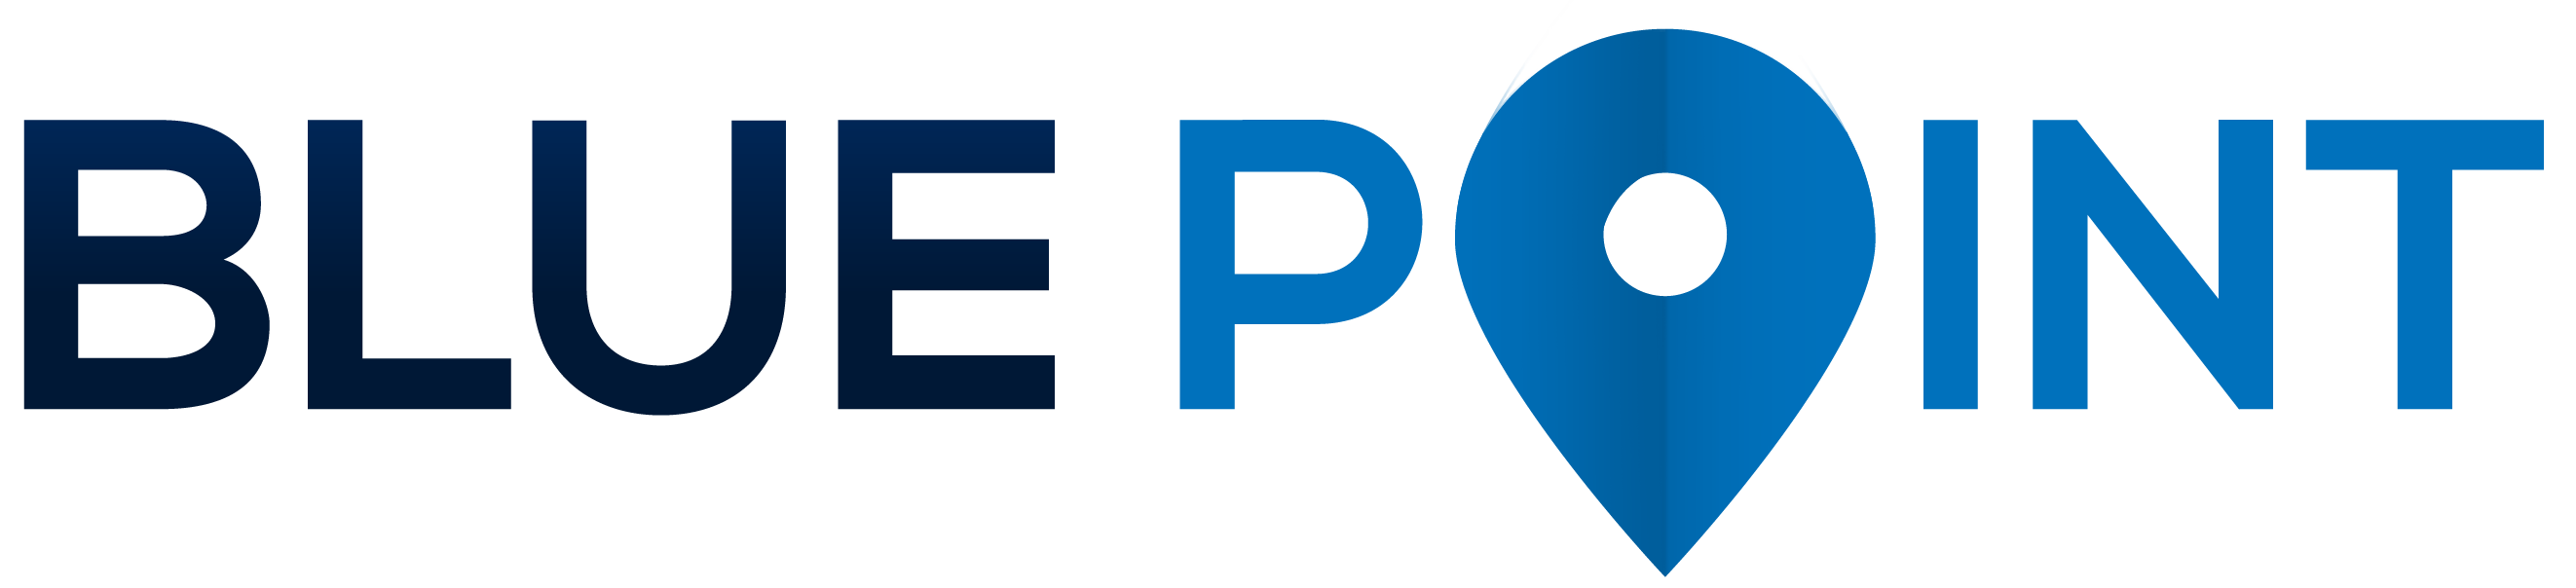 Bluepointsearch Logo